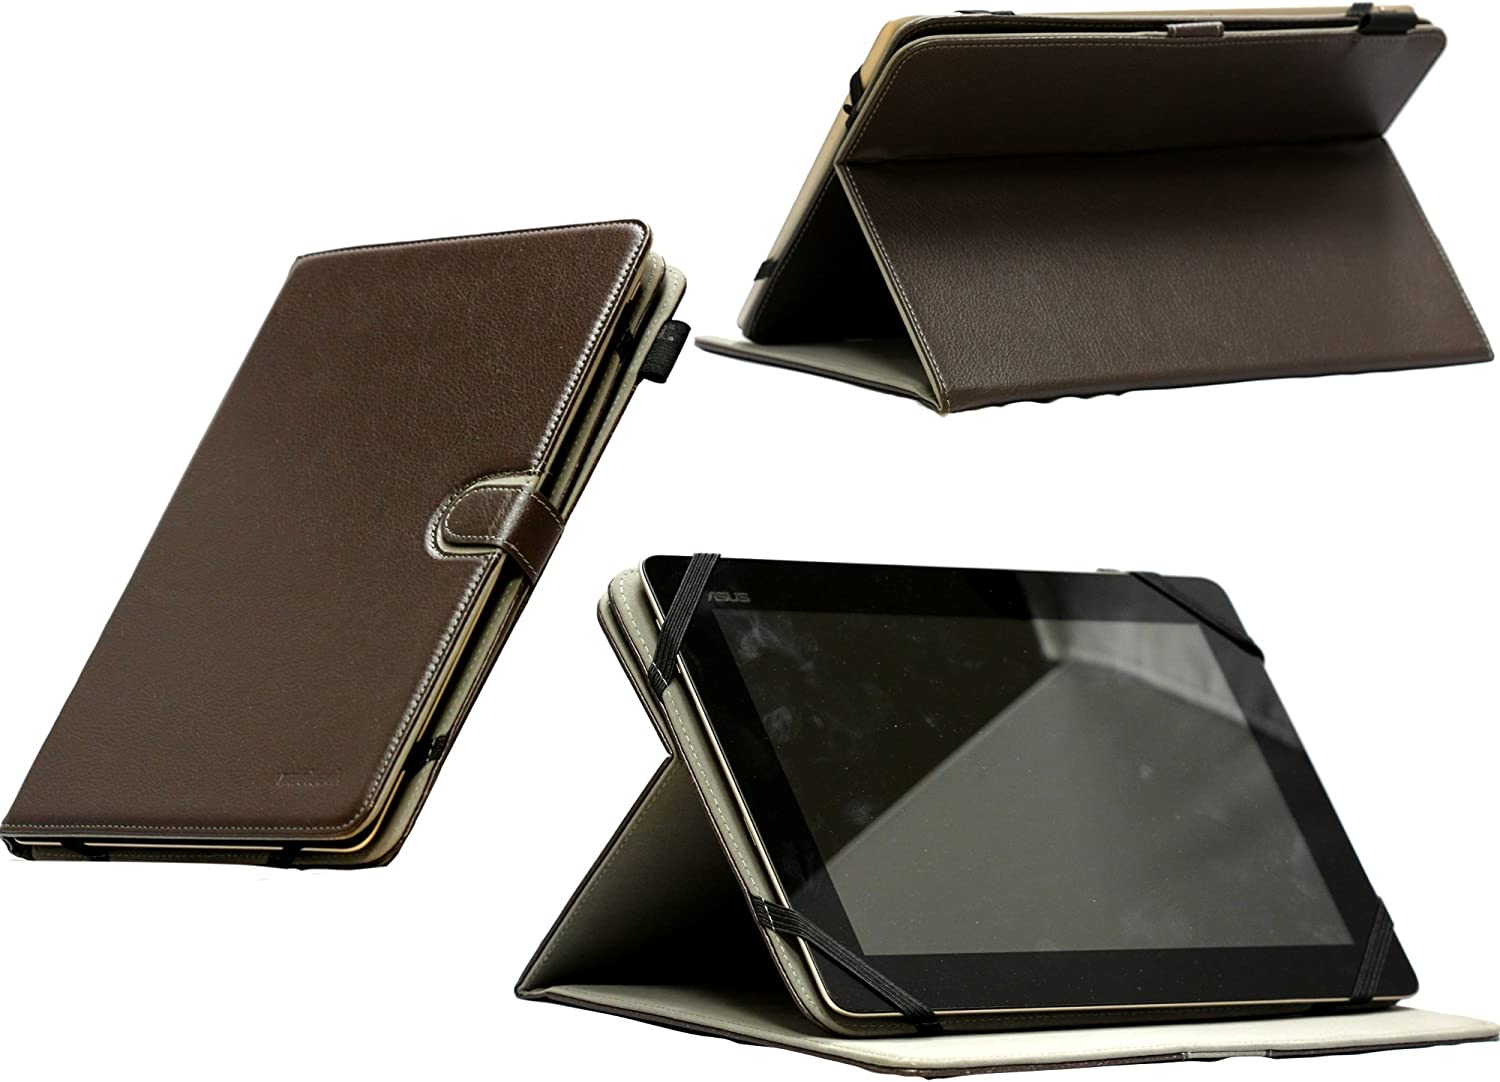 Navitech Brown Faux Leather Case Cover with 360 Rotational Stand Compatible with The Acer Aspire Iconia Tab A200 /A210/ A211 /A500 /A510 /A700 / W510